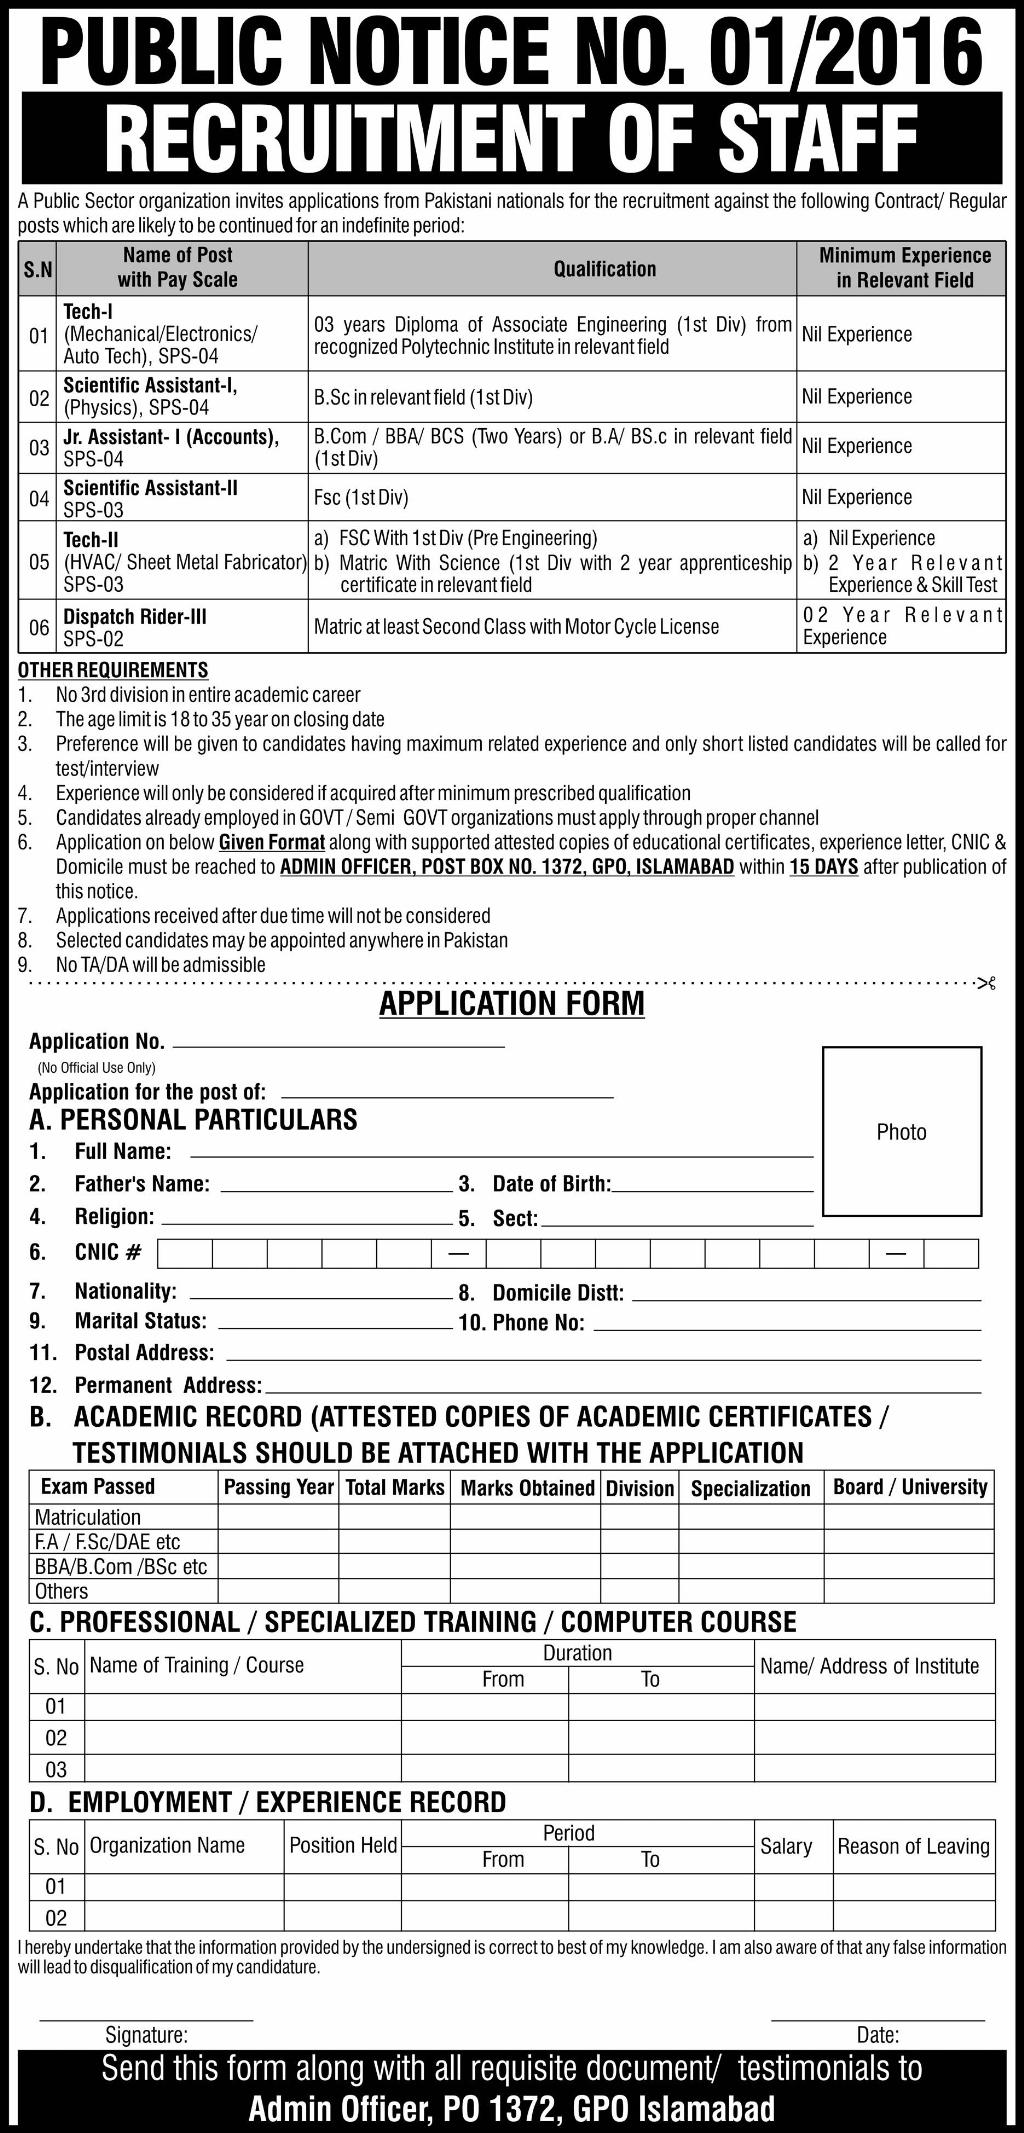 PO Box 1372 Islamabad Jobs 2016 PAEC Application Form Download ...